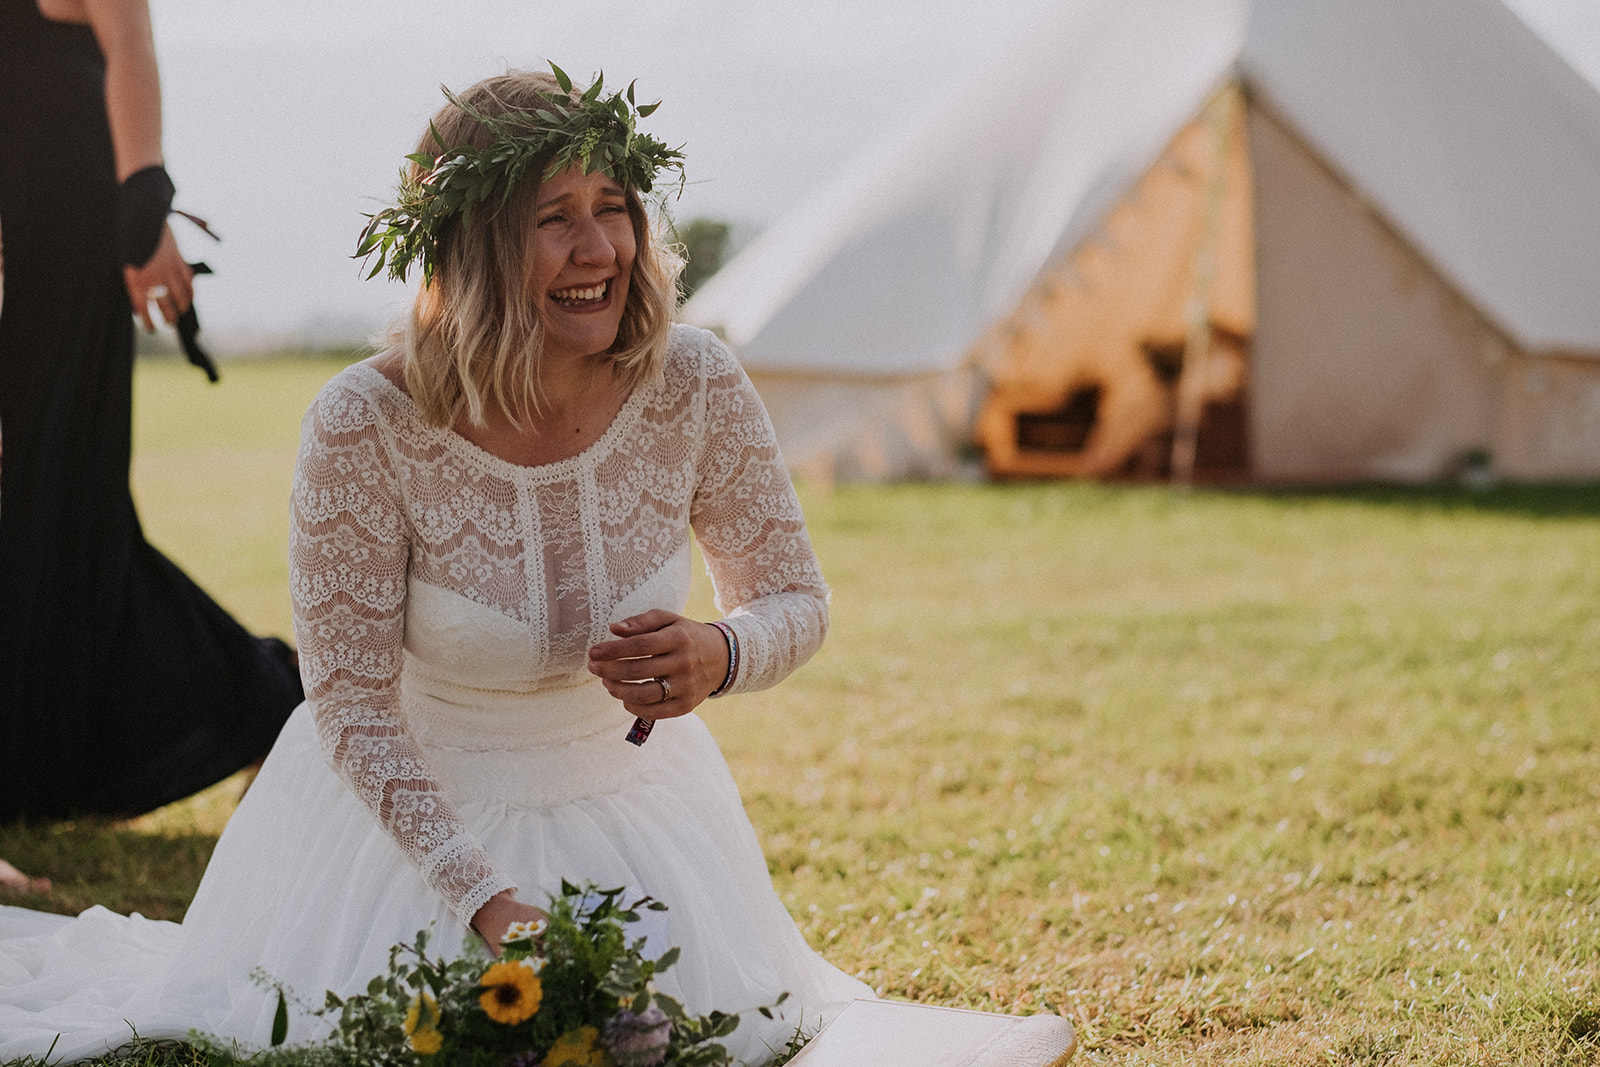 Bride enjoying her day, laughing at groom being carried - cattows farm wedding with sami tipi